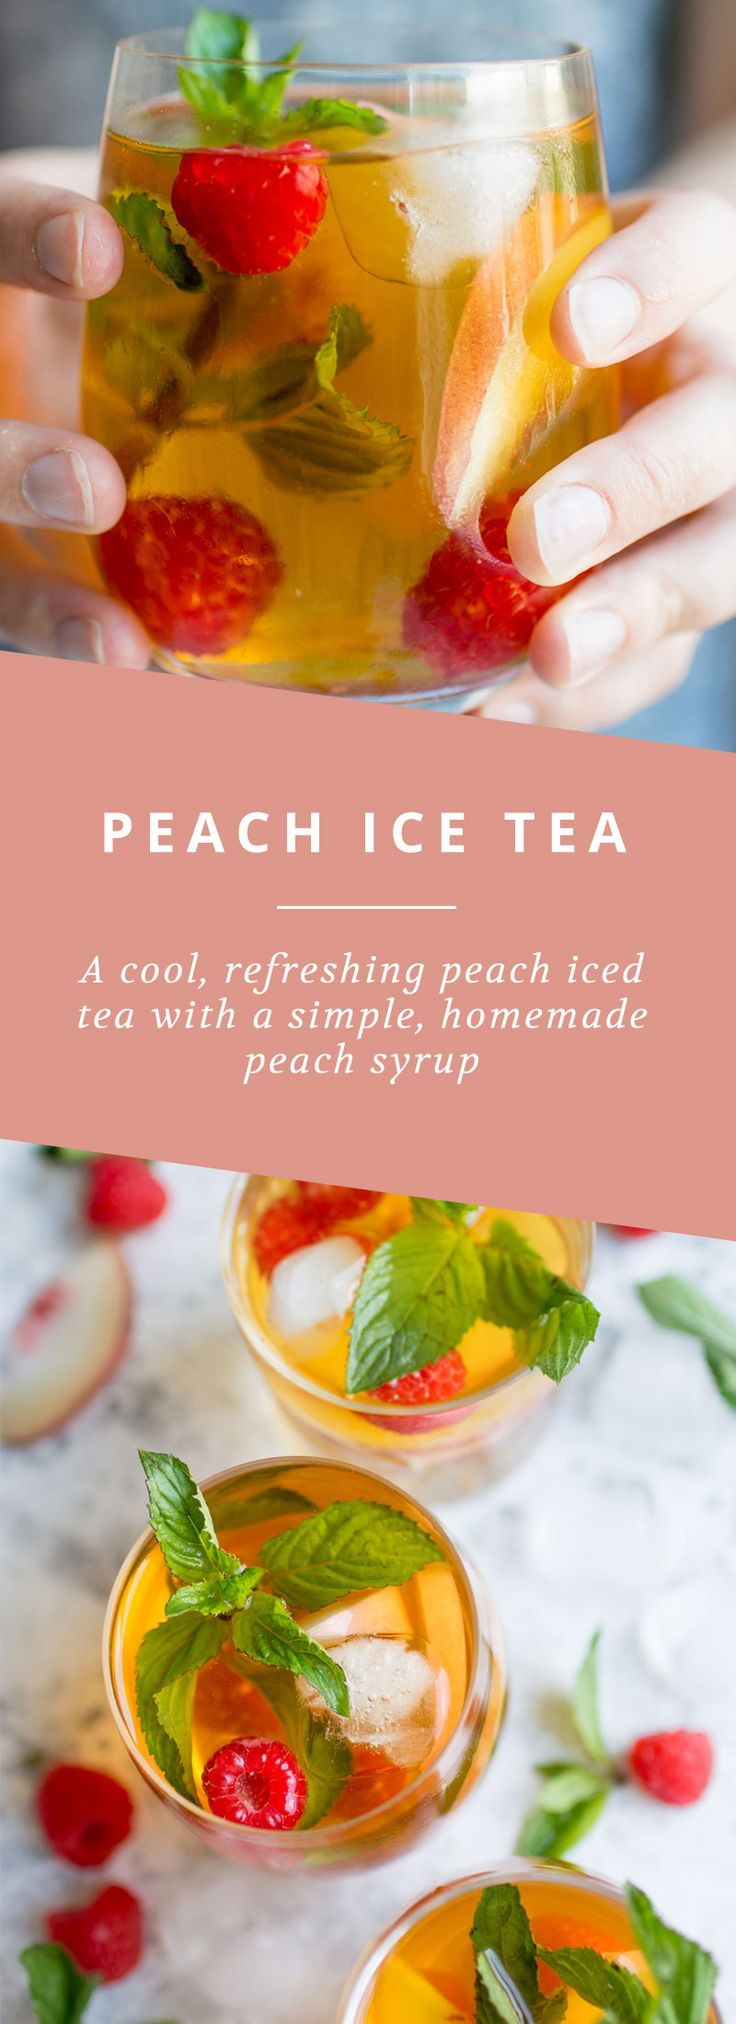 A cool, refreshing peach ice tea with a simple, homemade peach syrup maybe add peach schnapps ? for an alcoholic twist